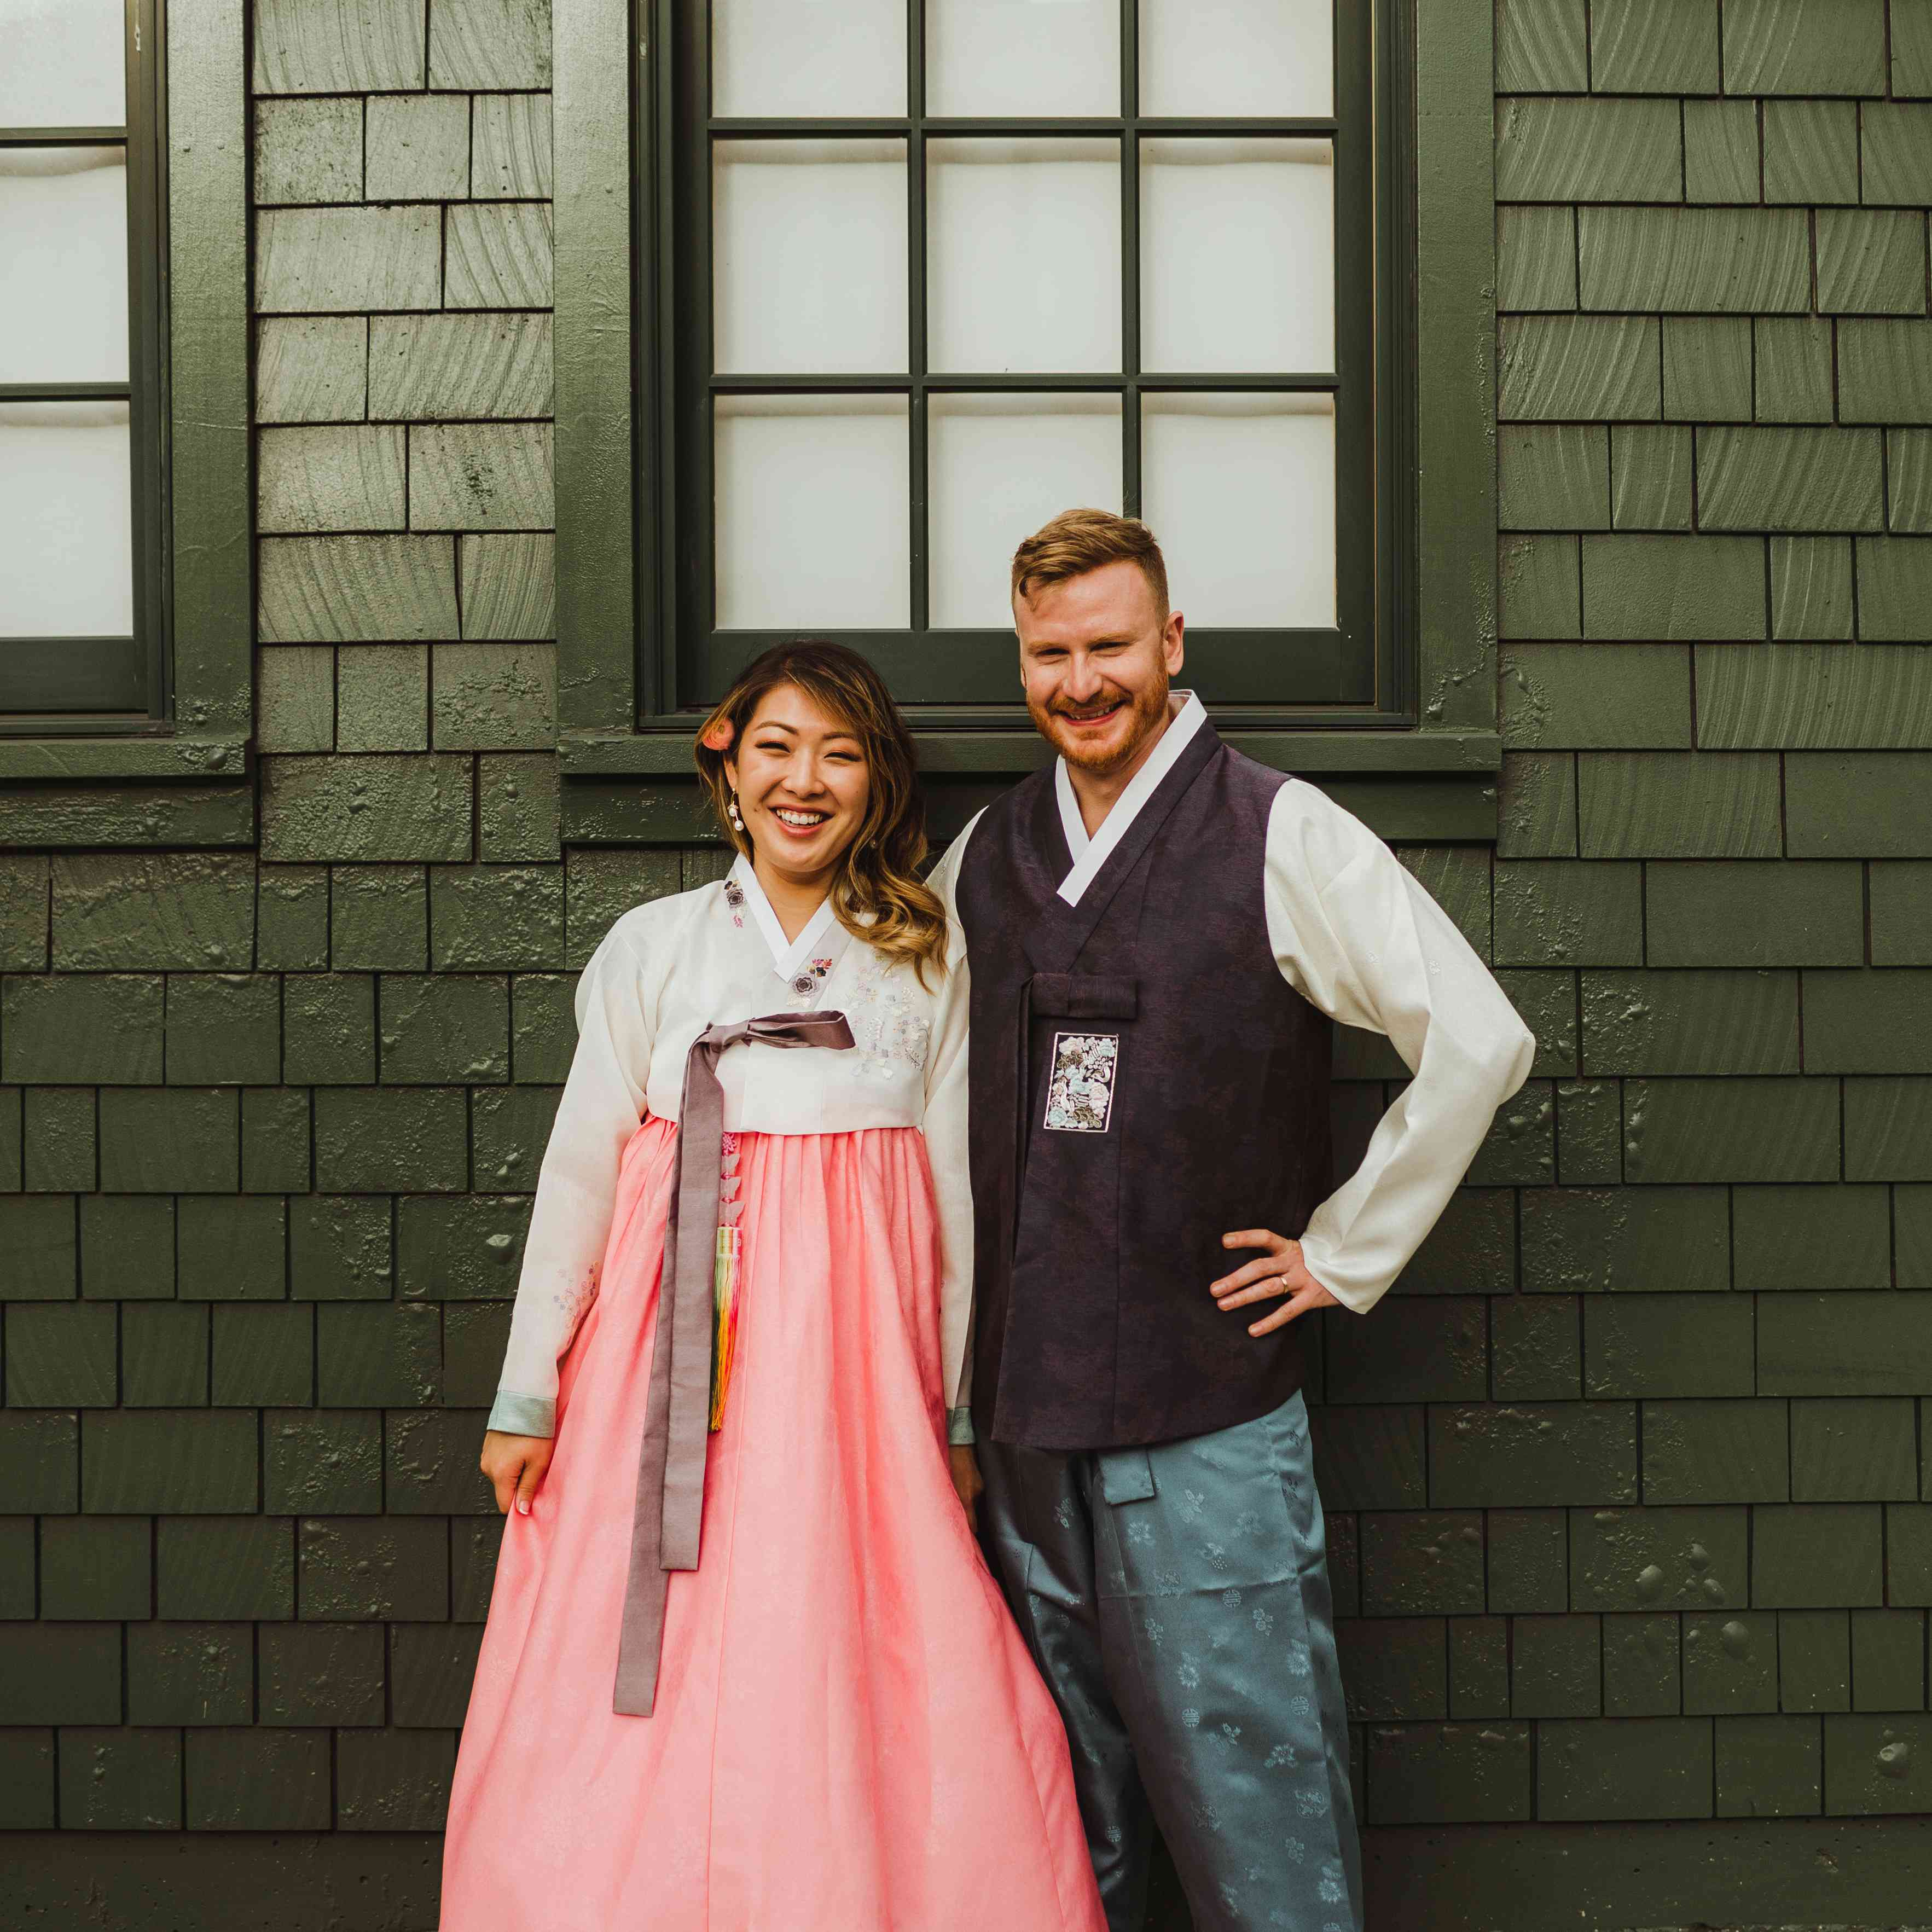 <p>Bride and groom in traditional clothing</p><br><br>